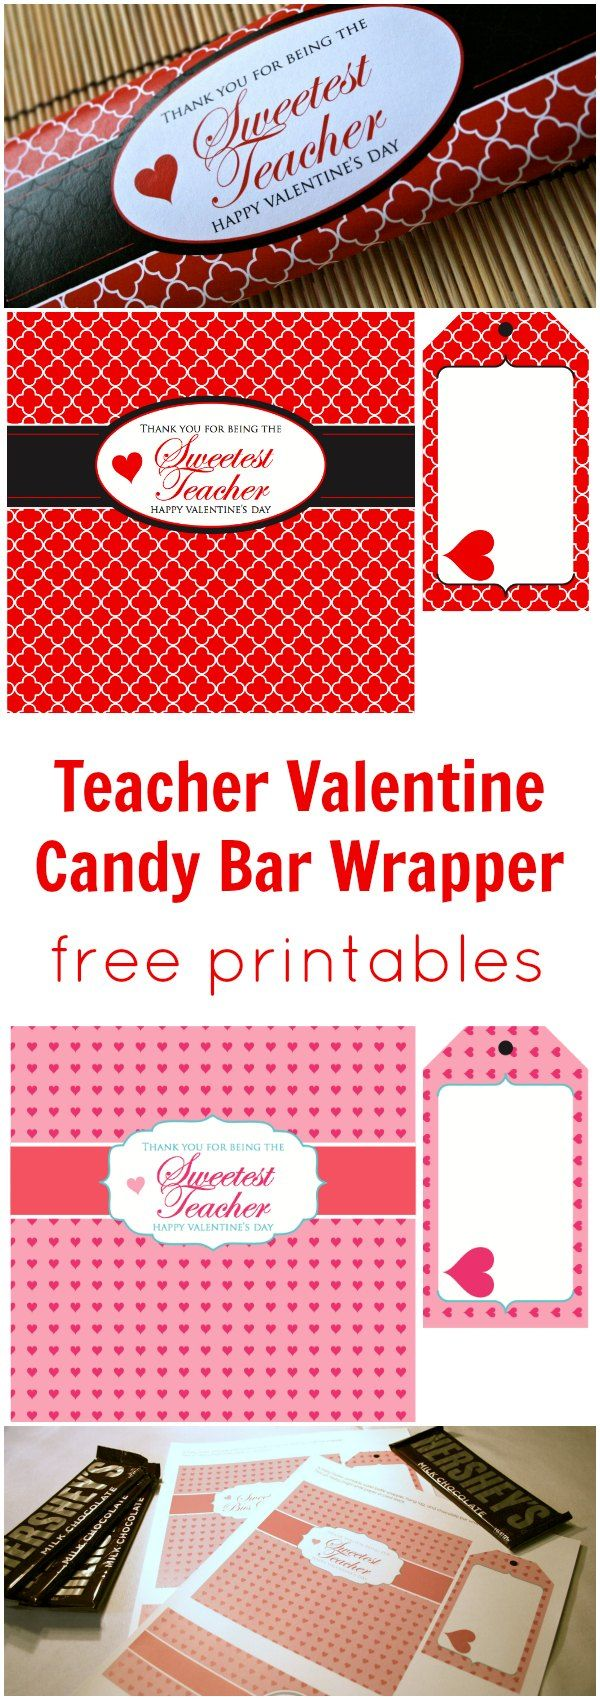 Teacher & Bus Driver Free Valentine Printables: chocolate bar wrapper, water bottle label and oversized hang tags. Choice of red/black/white or pink and white.